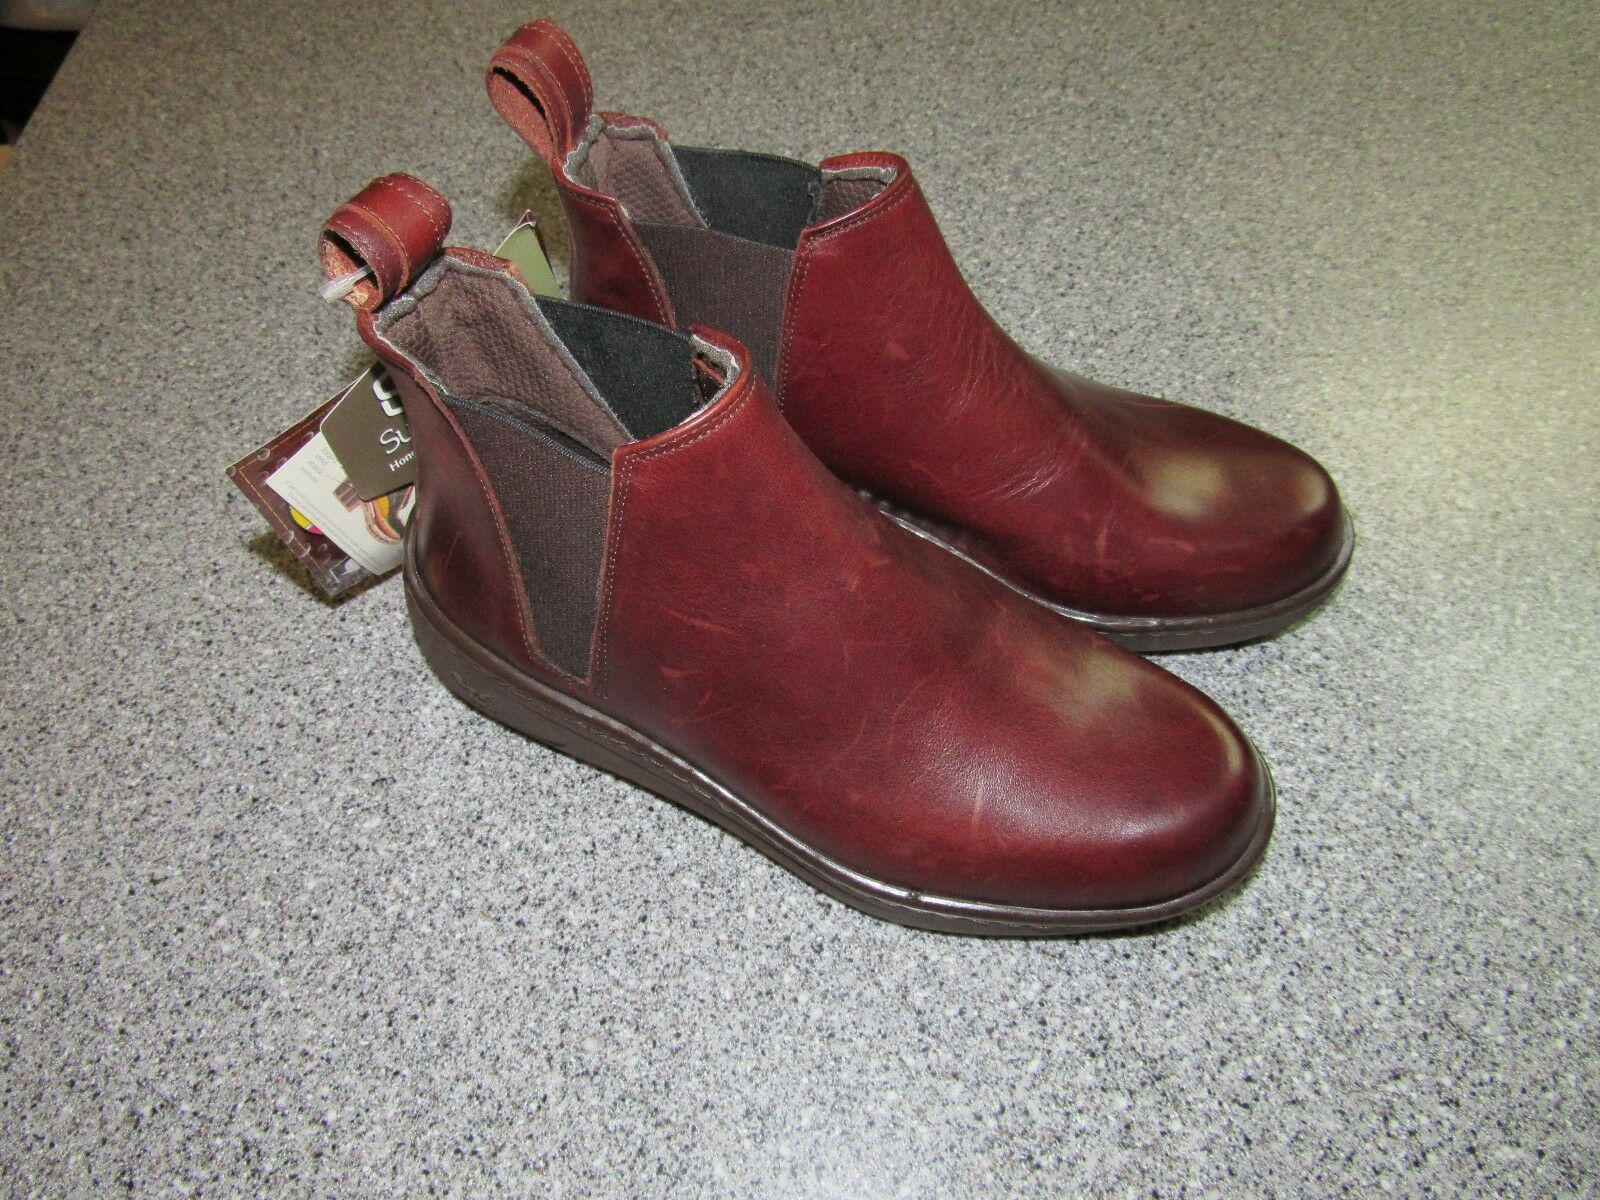 NWT WOMENS LANDI SPORT MADE IN ITALY BOOTS SIZE 5.5 WESTERN HORSE RIDING SHOES